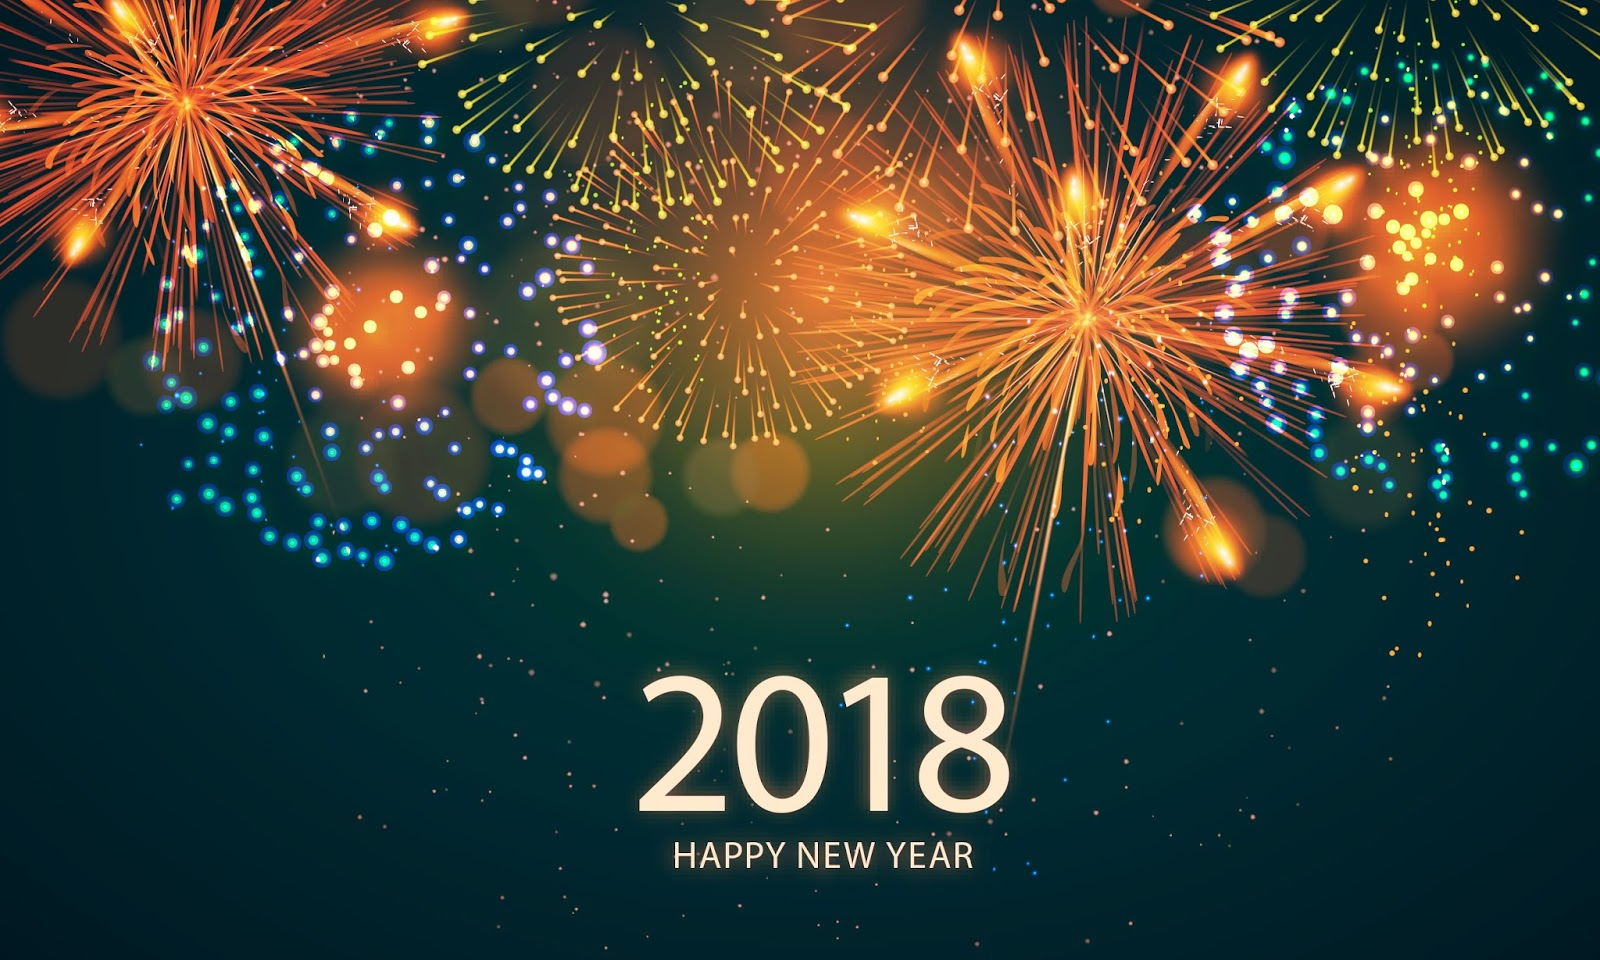 happy new year hd wallpapers 2018